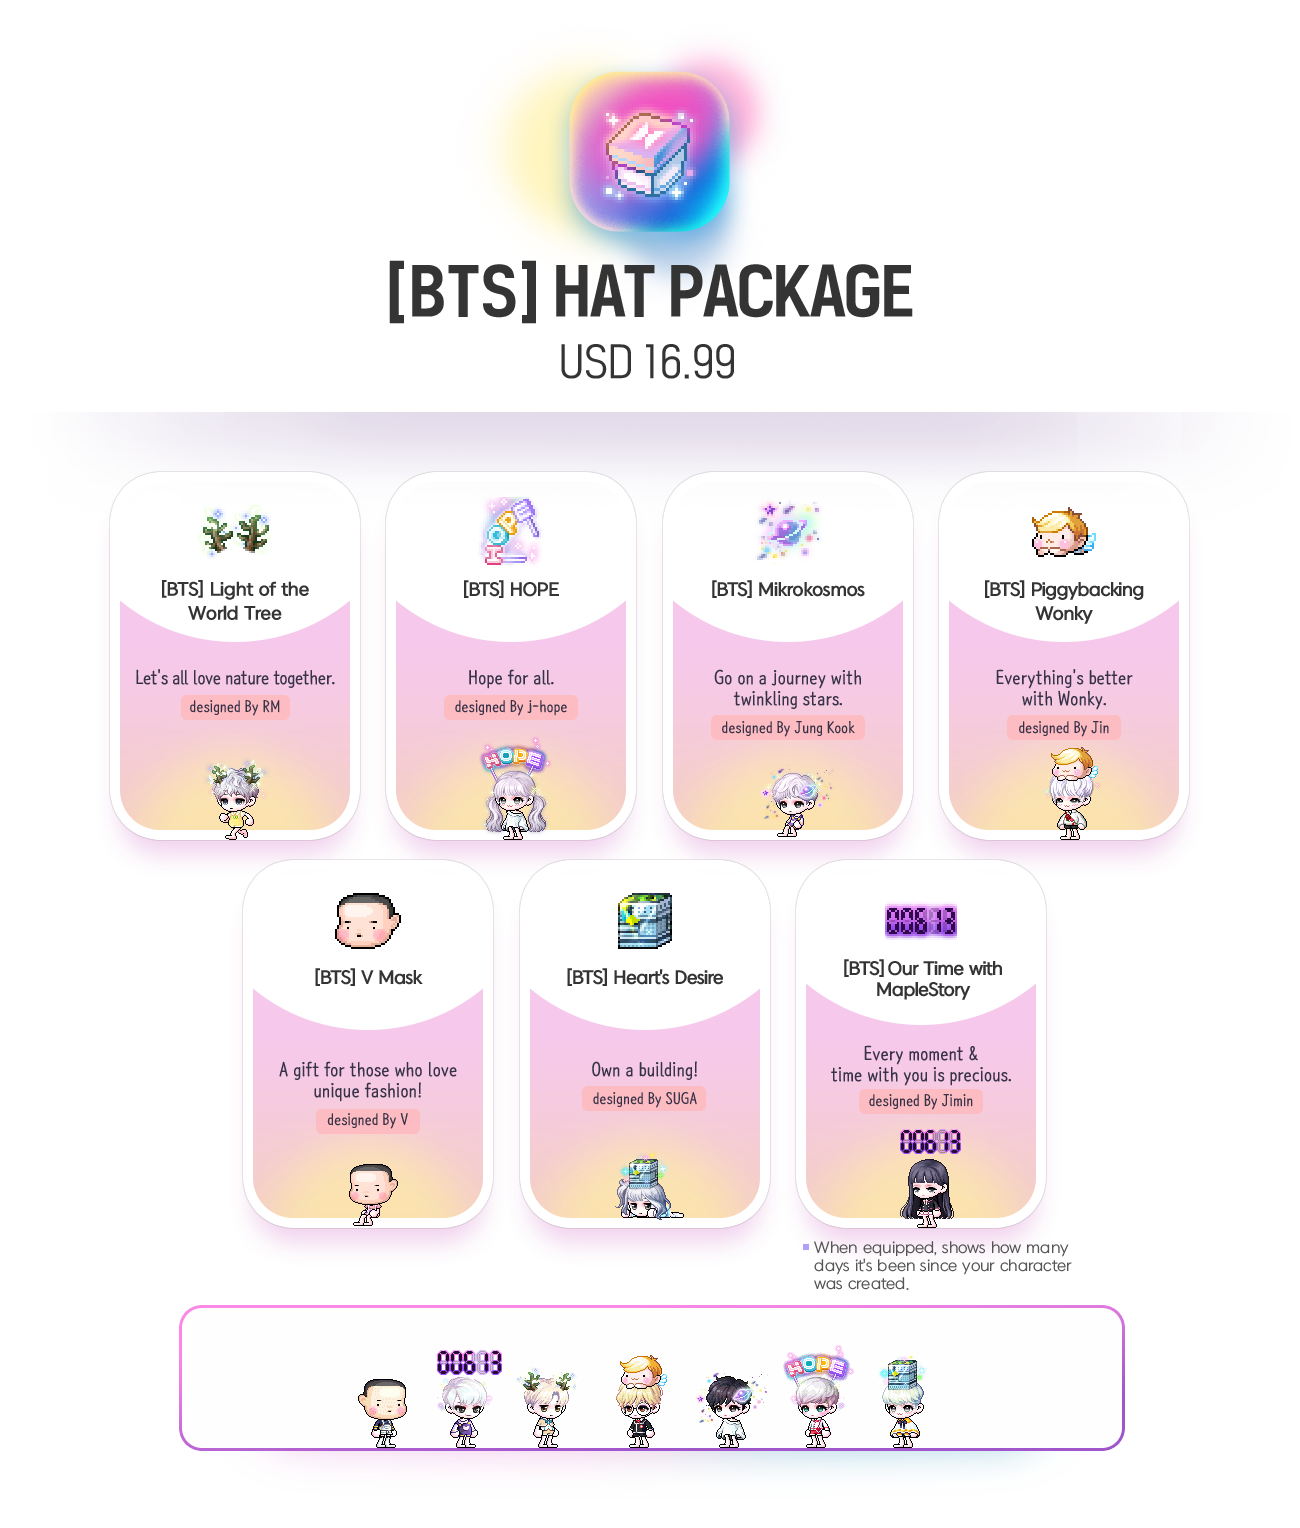 [BTS] Hat Package USD 16.99